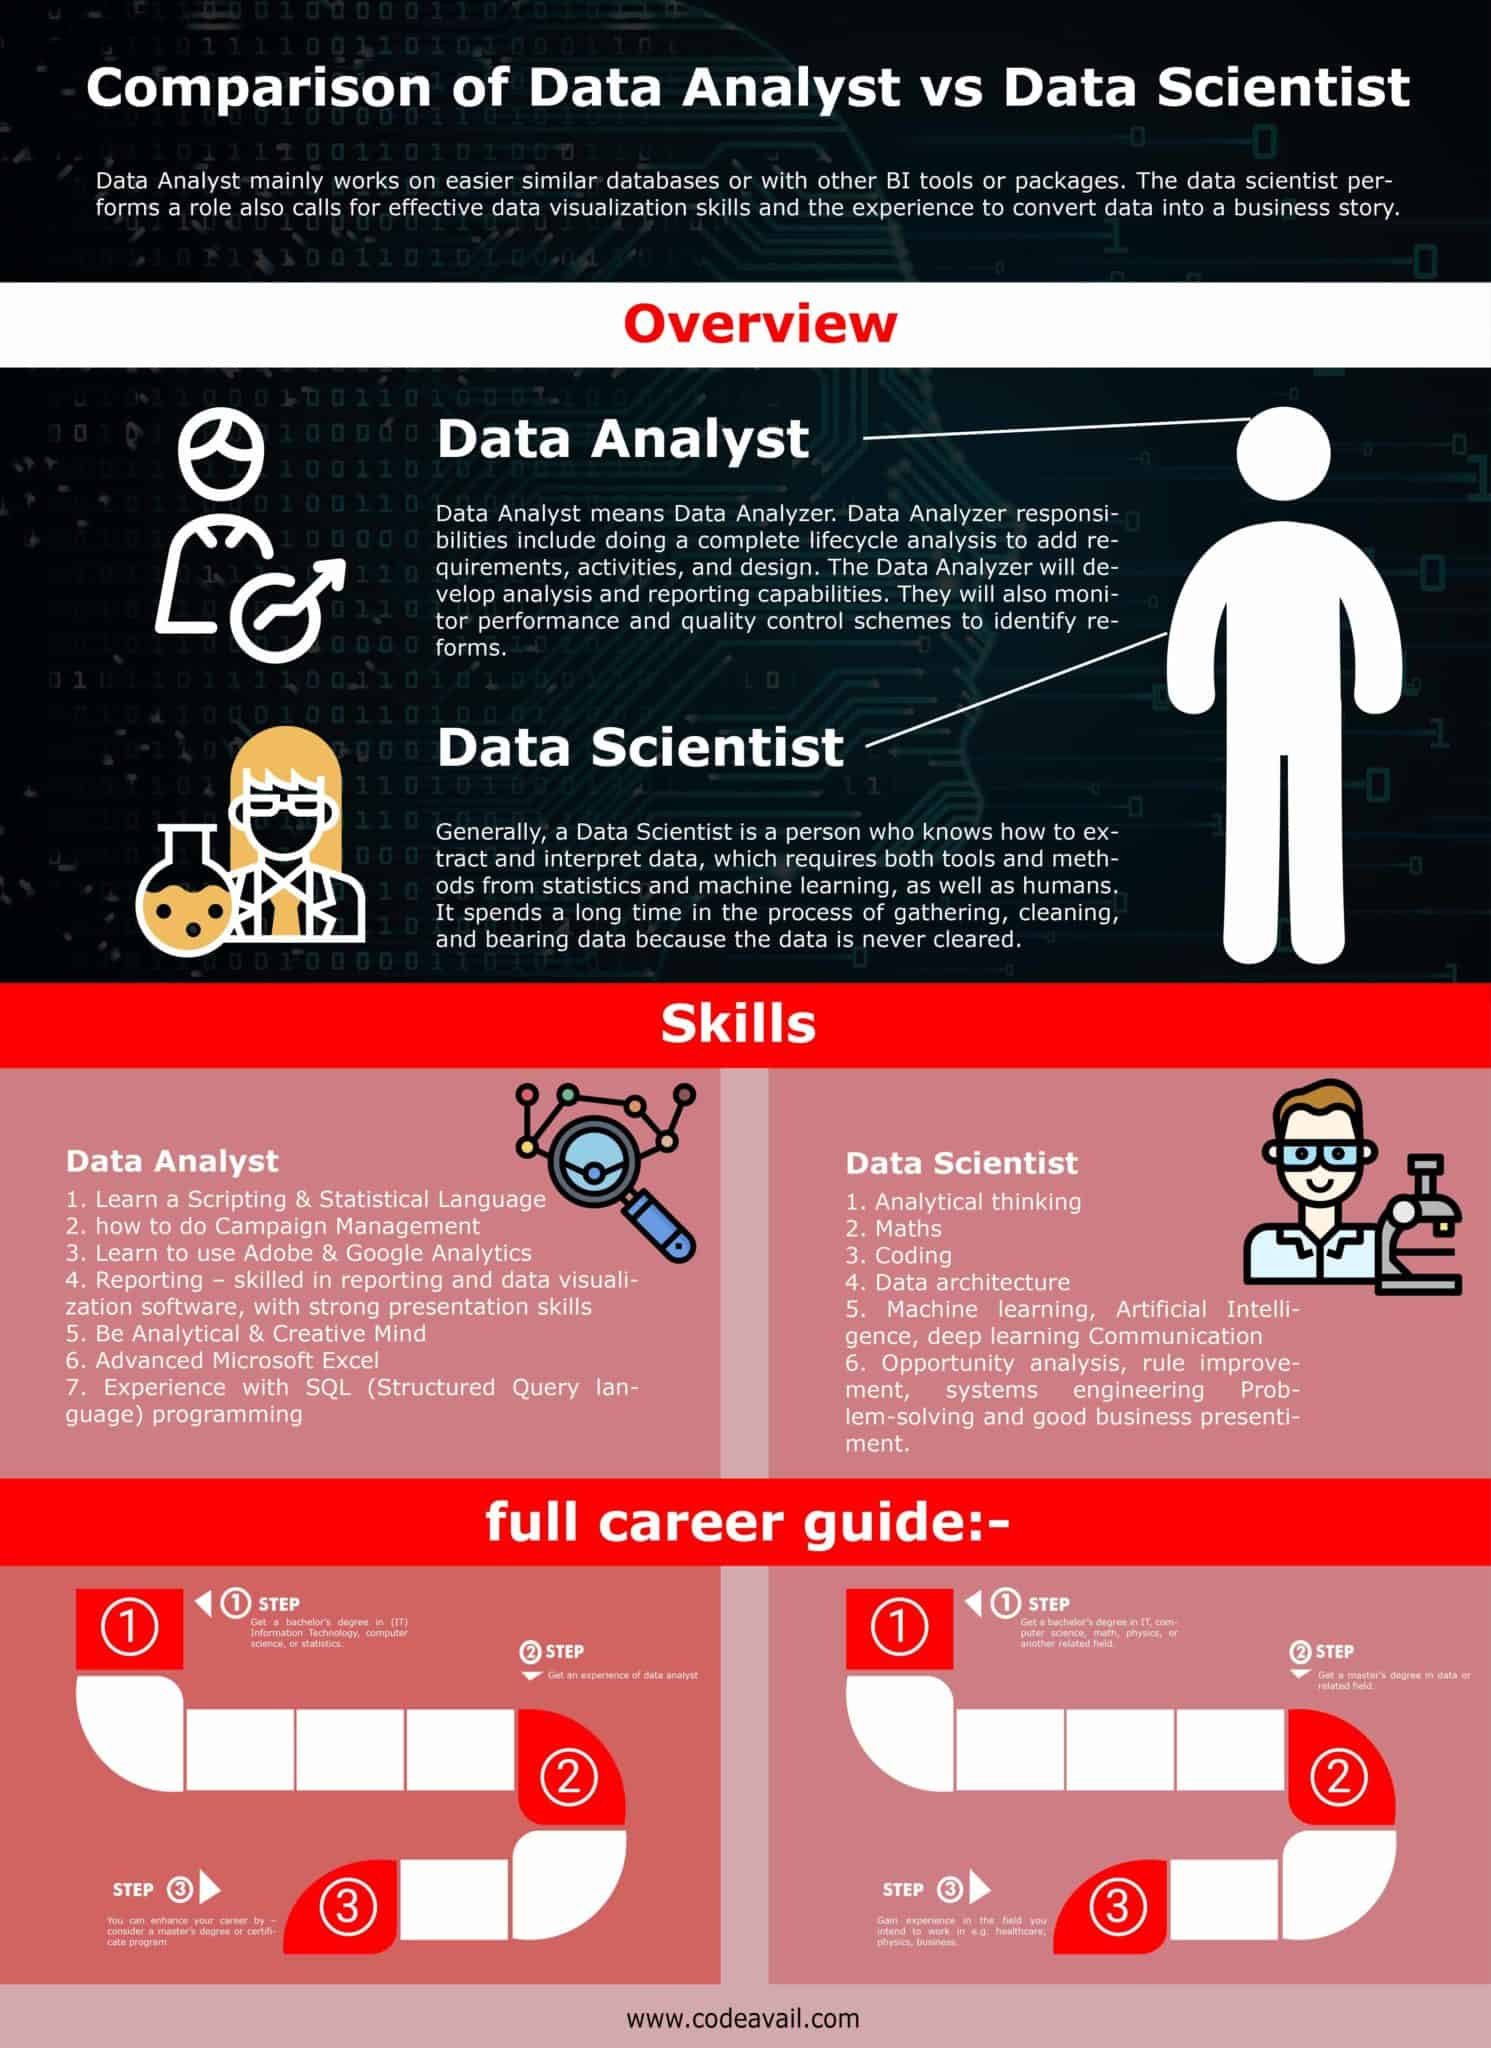 Best Comparison of Data Analyst VS Data Scientist